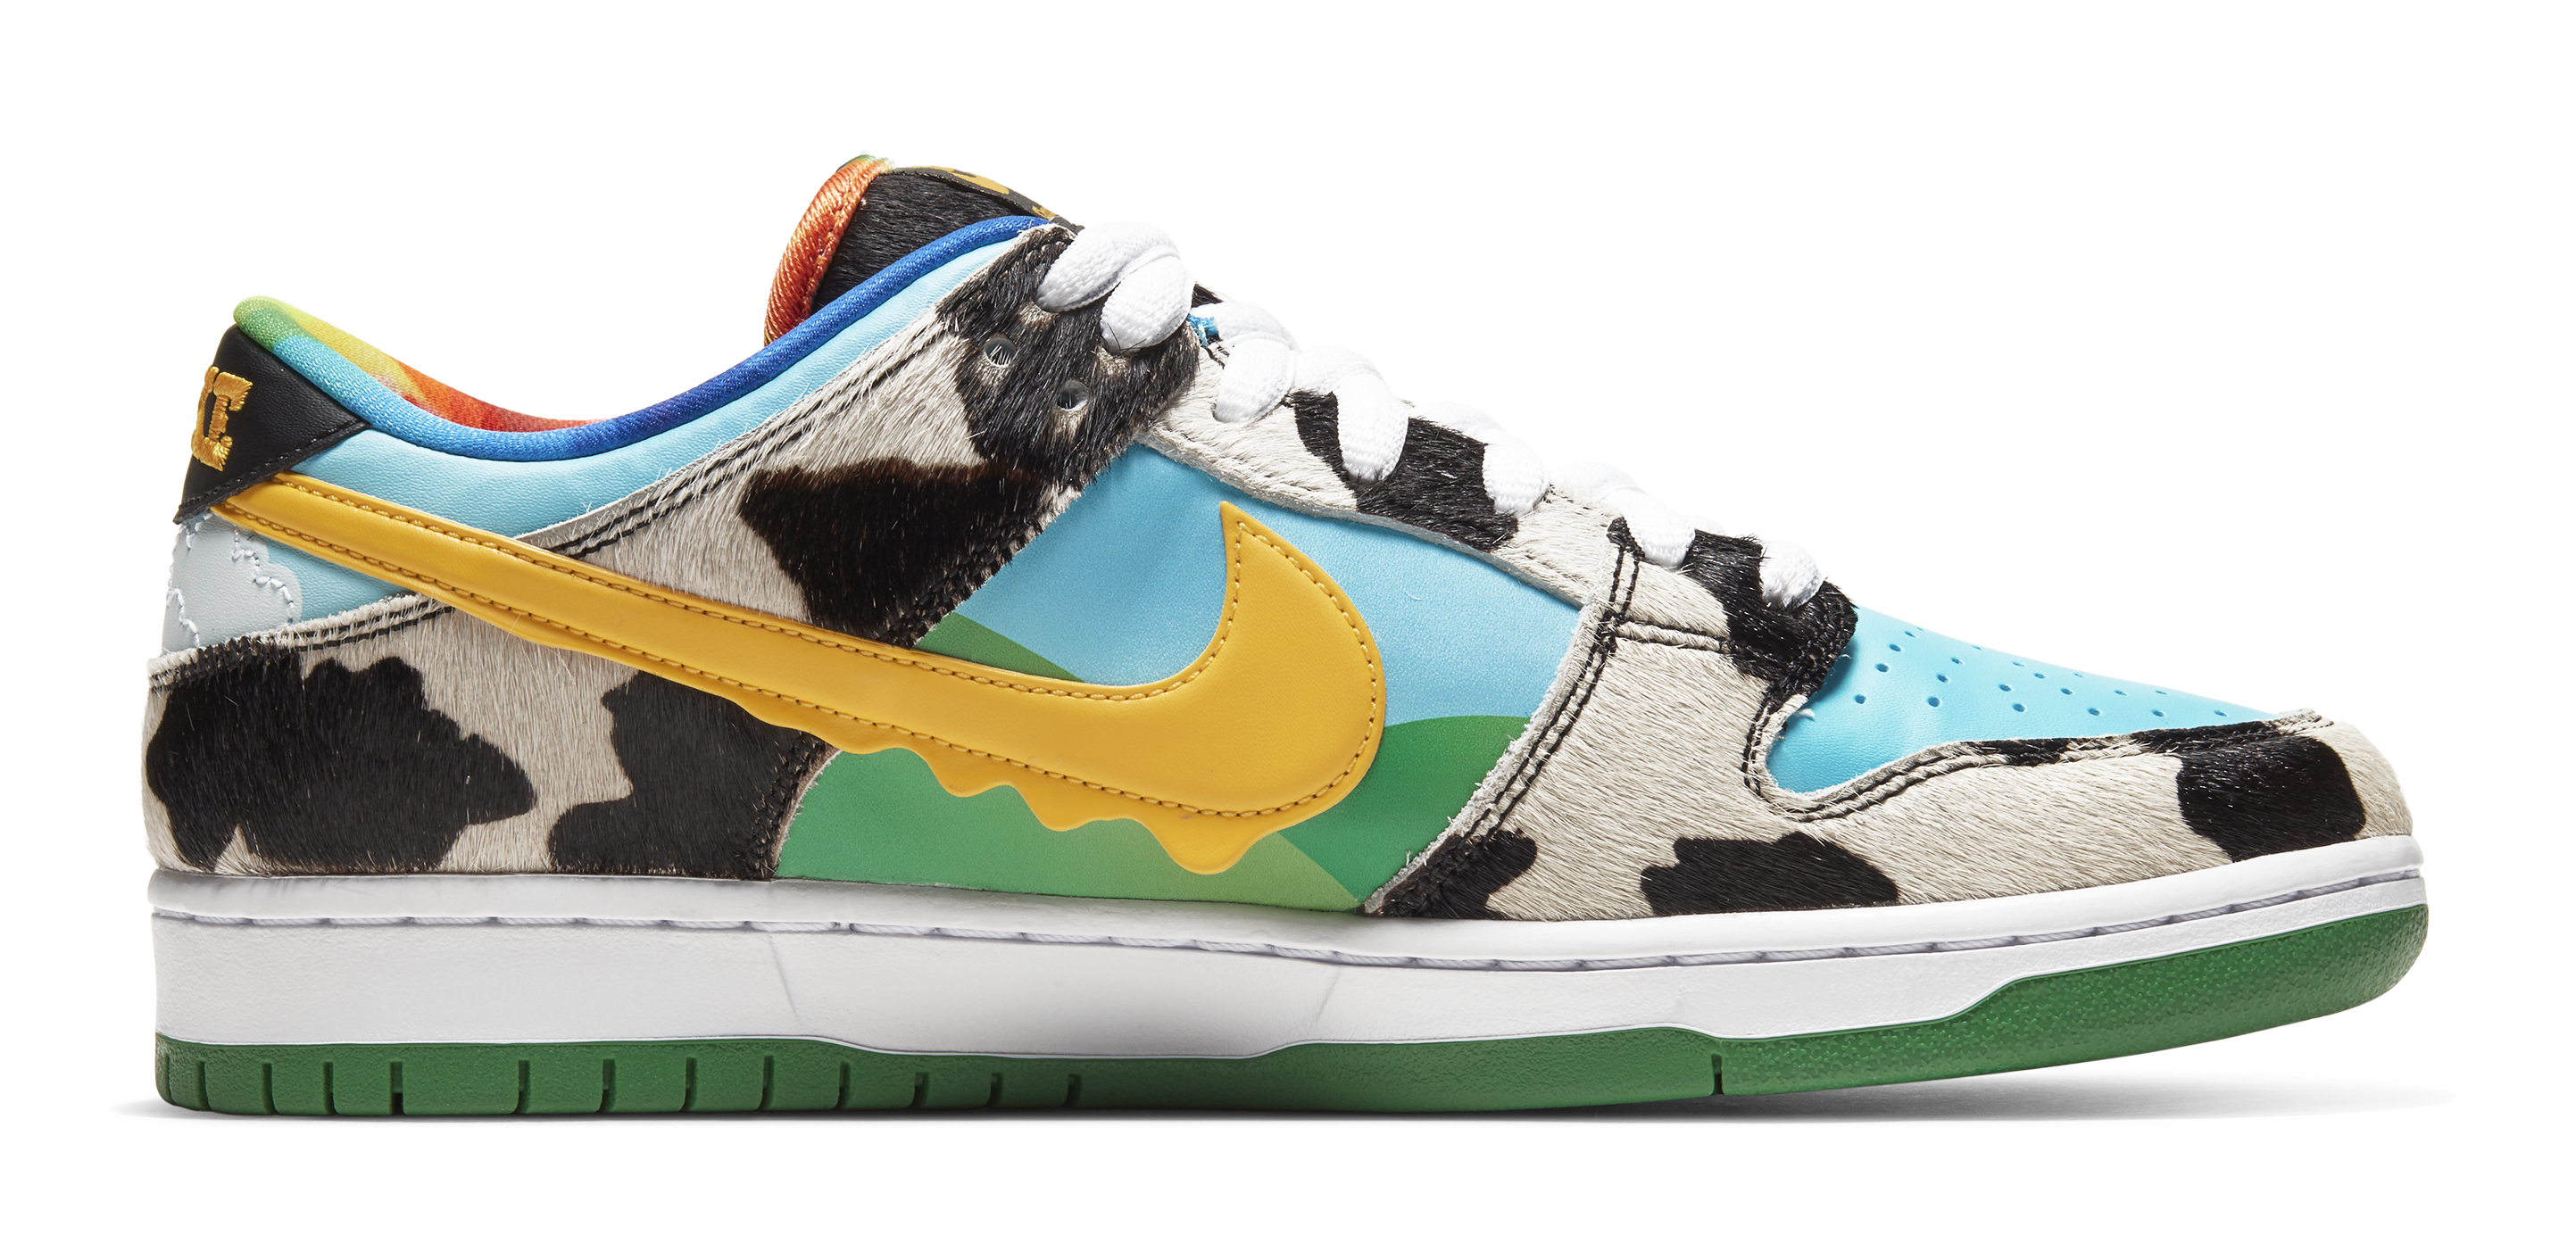 Ben and Jerry's x Nike SB Dunk Low 'Chunky Dunky' CU3244-100 (Medial)